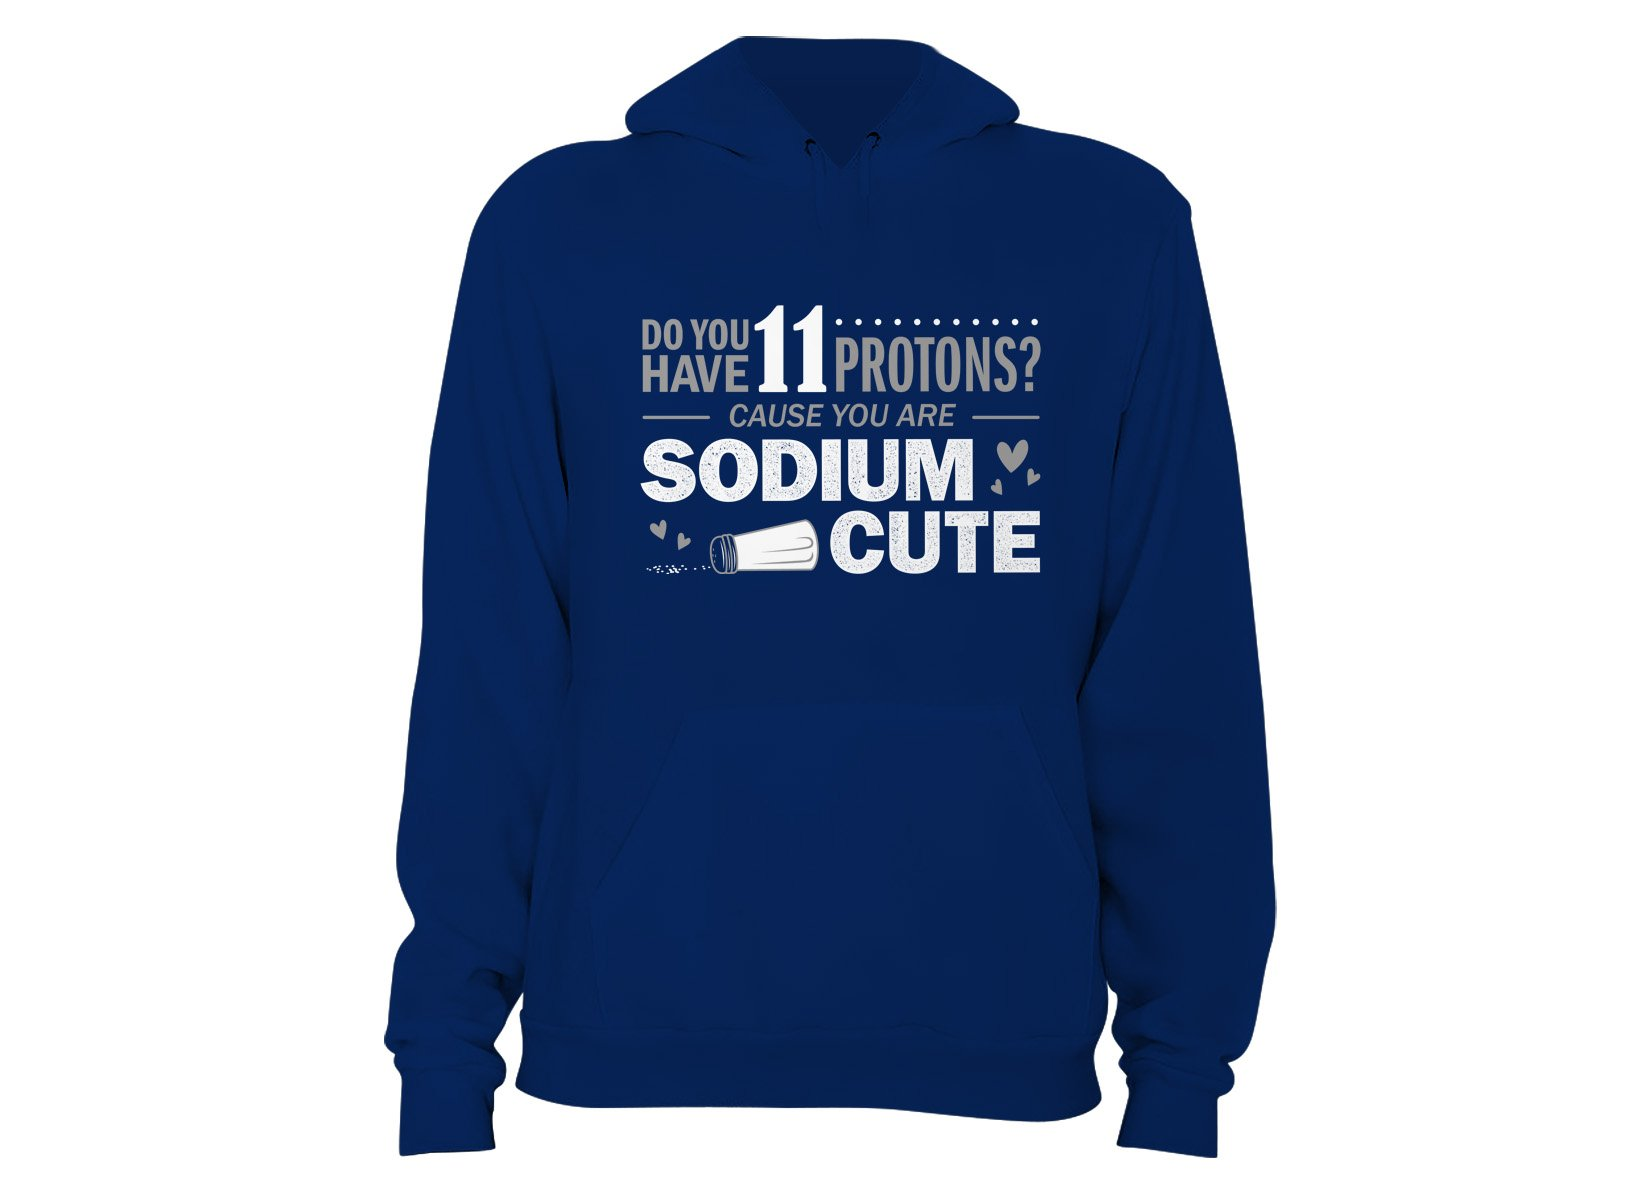 You Are CuTe on Hoodie